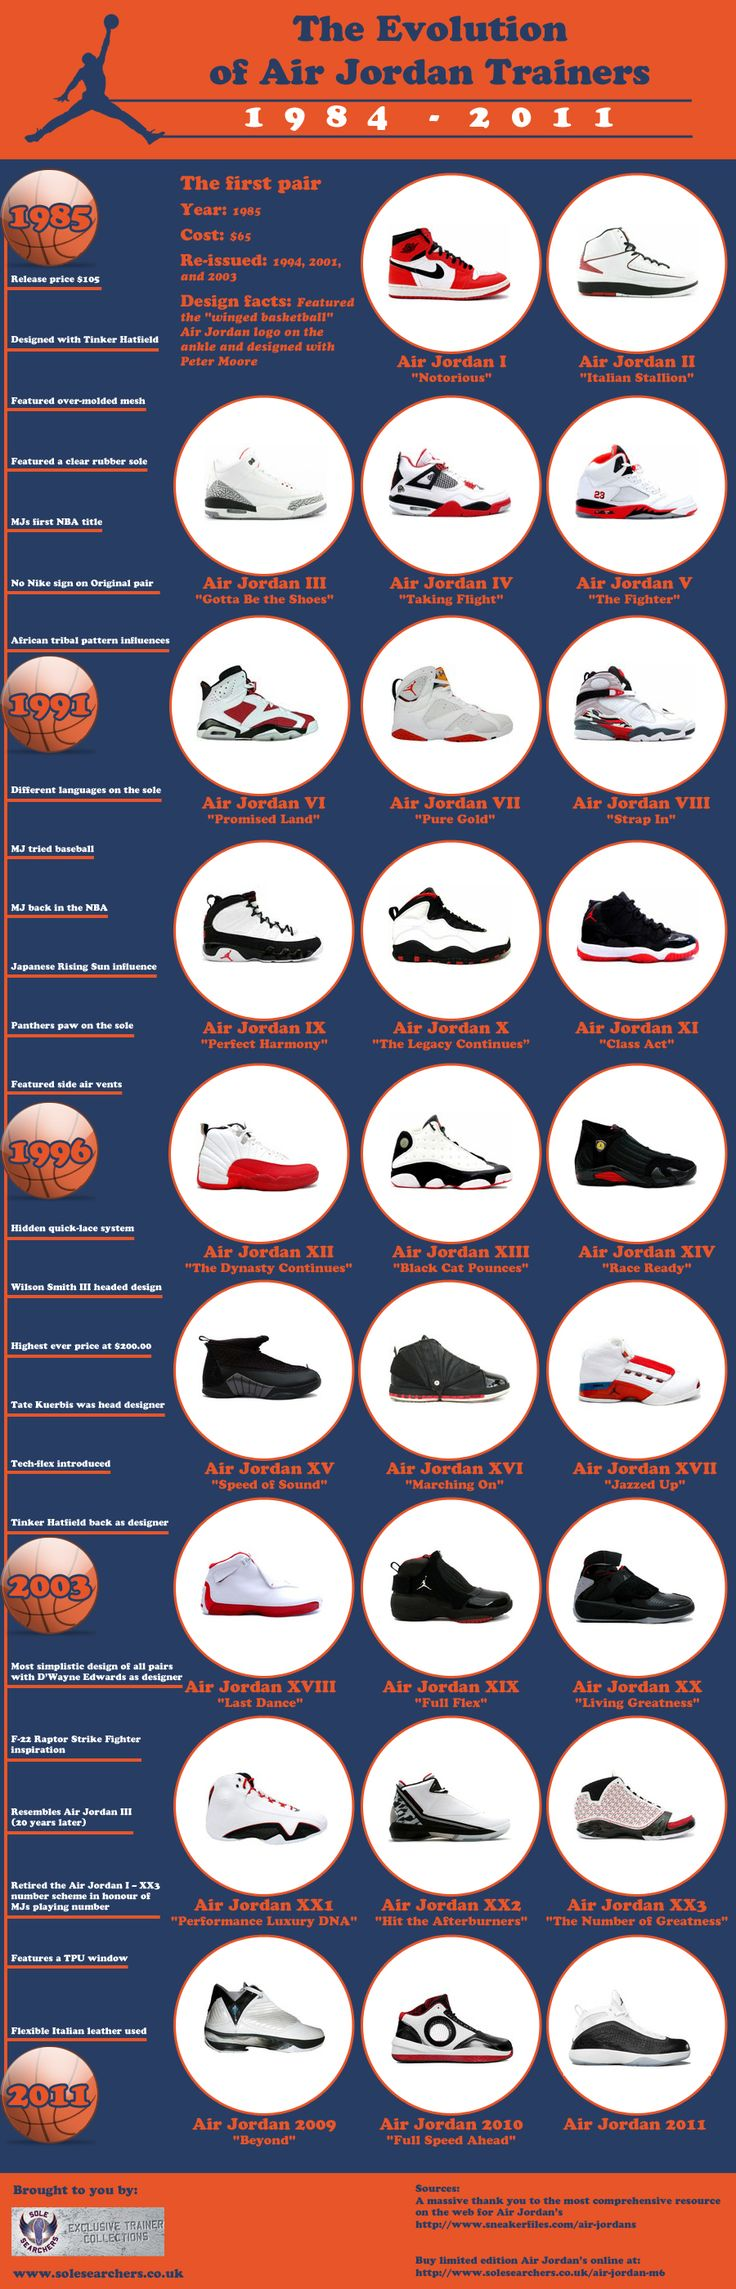 The changing look of Air Jordan's through the last 35 years